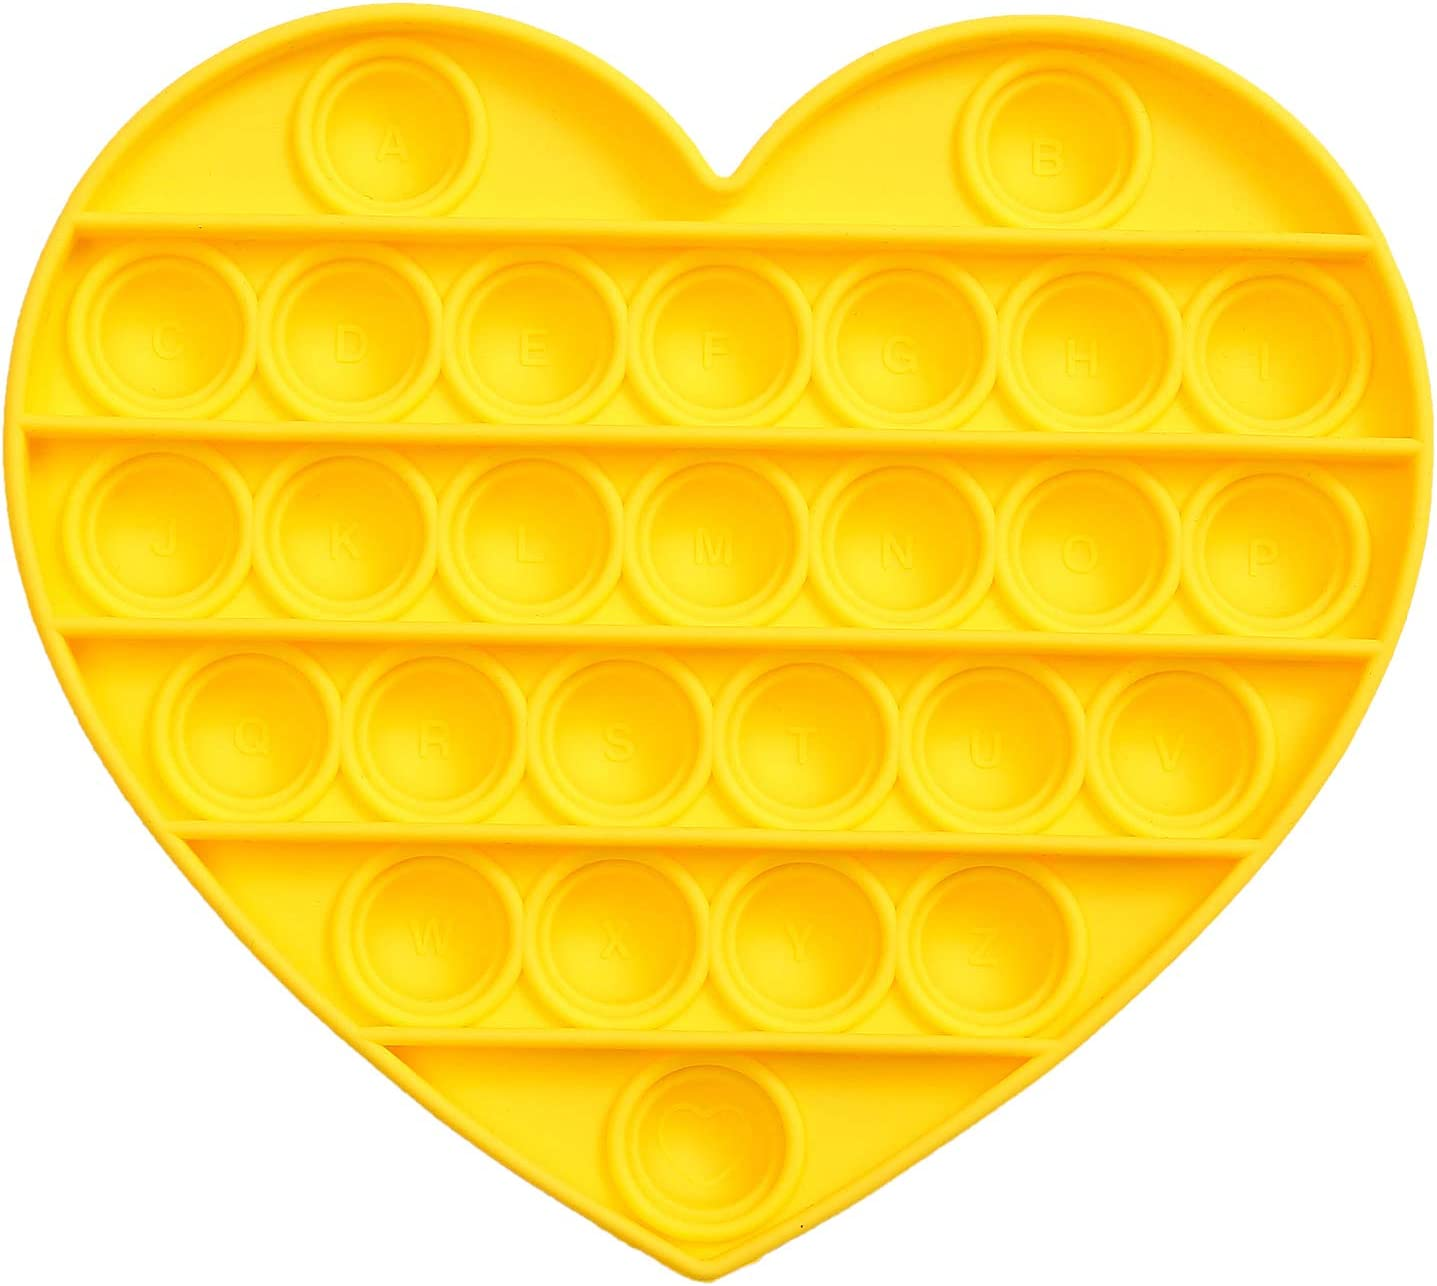 Squeeze Sensory Toy B, Yellow Aphieha Push pop Bubble Sensory Fidget Toy,Autism Special Needs Stress Reliever Silicone Stress Reliever Toy Anxiety Relief Toys for Kids Adults